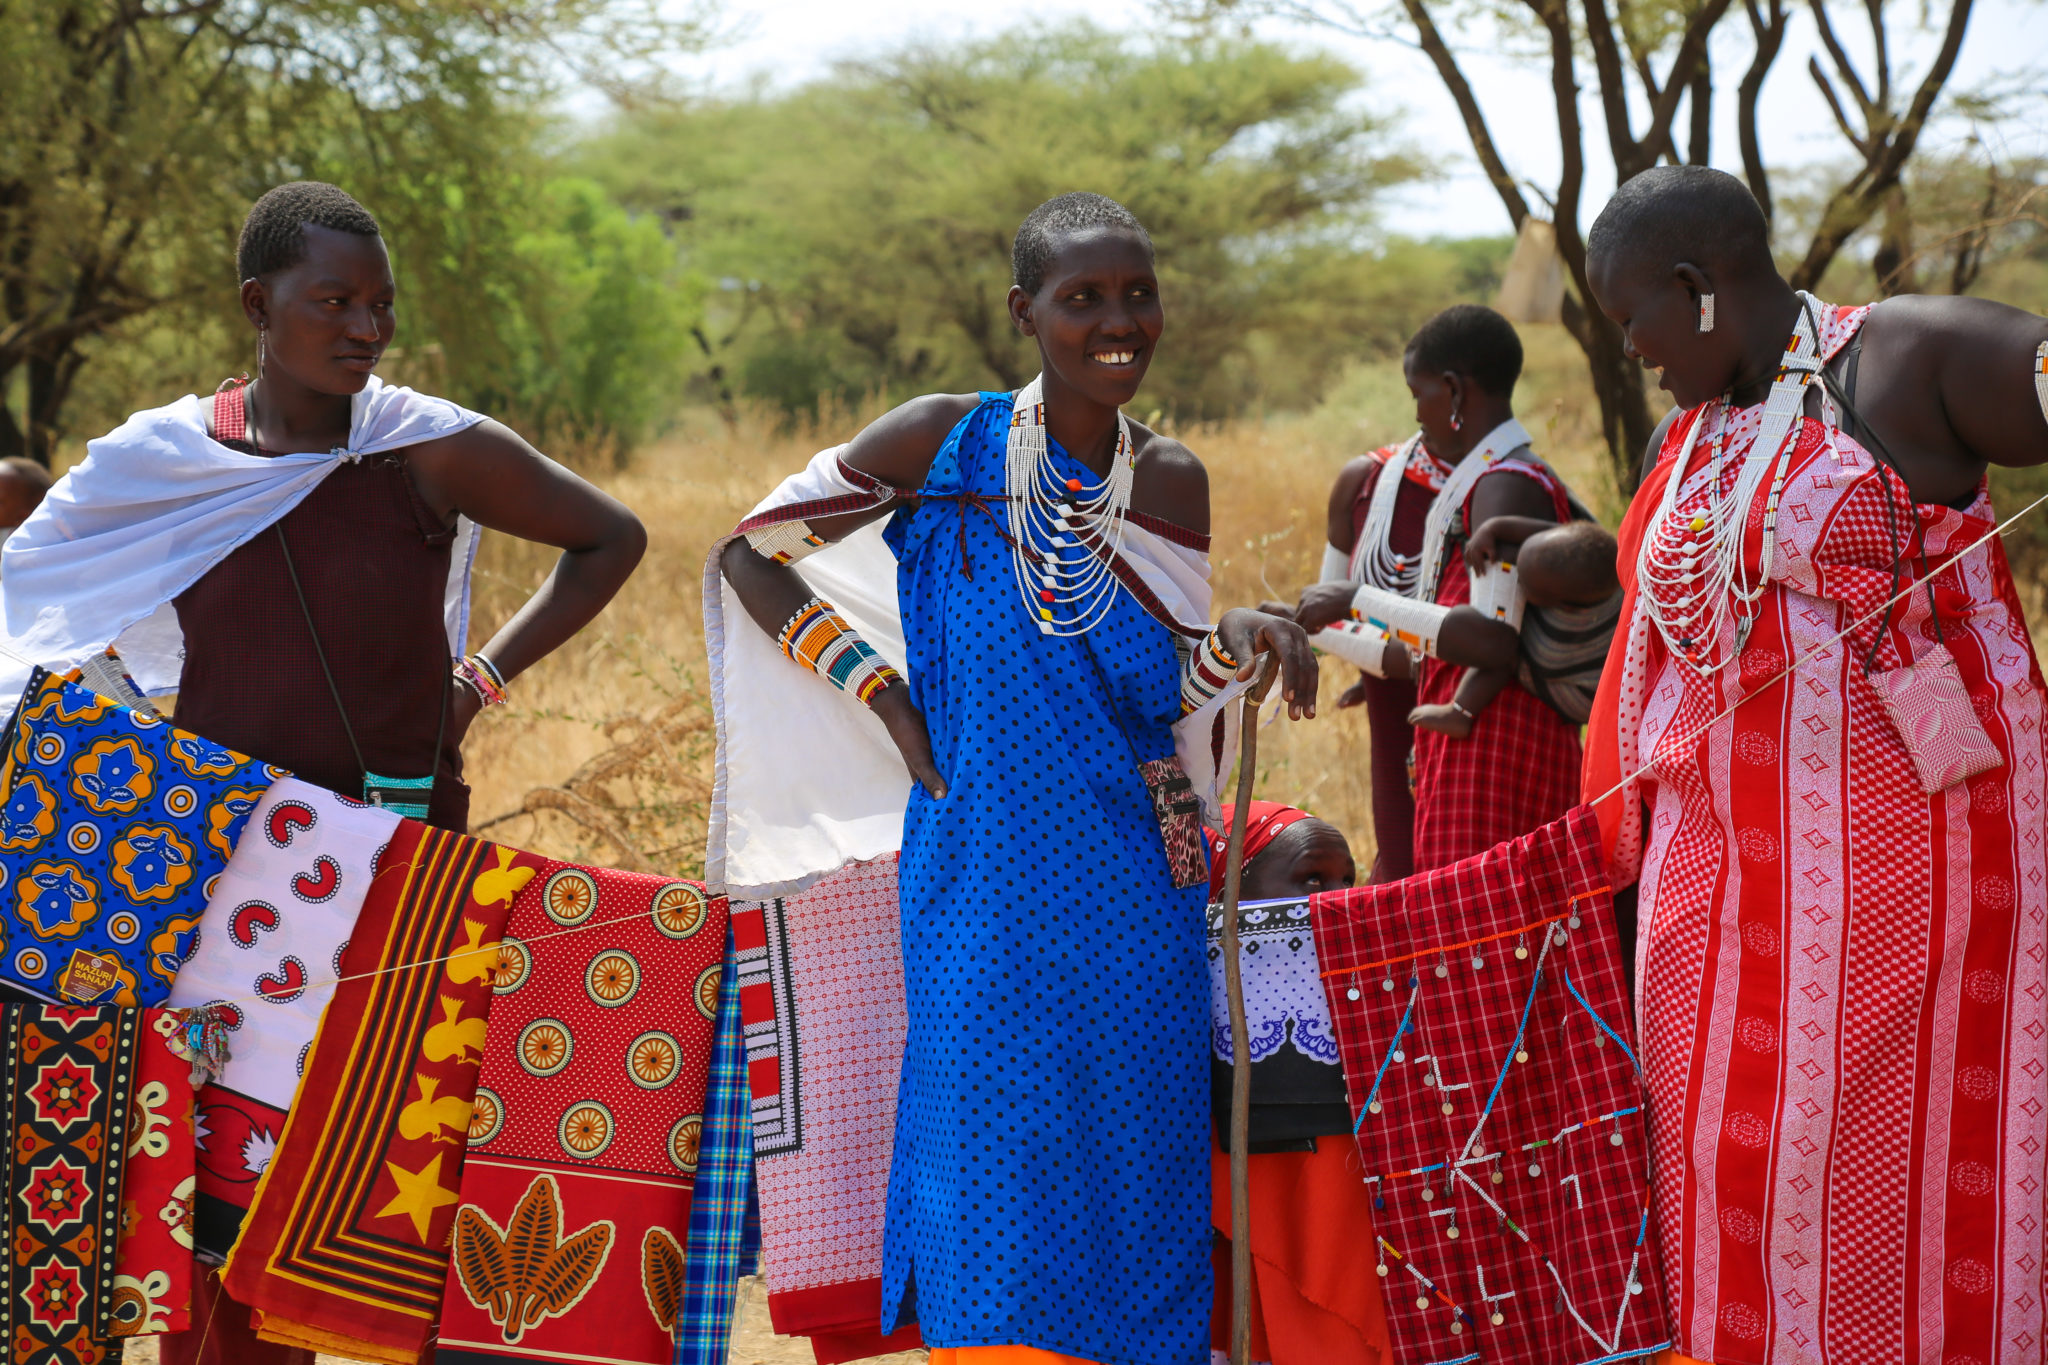 Maasai Women Selling Crafts - Mar Gone Wild